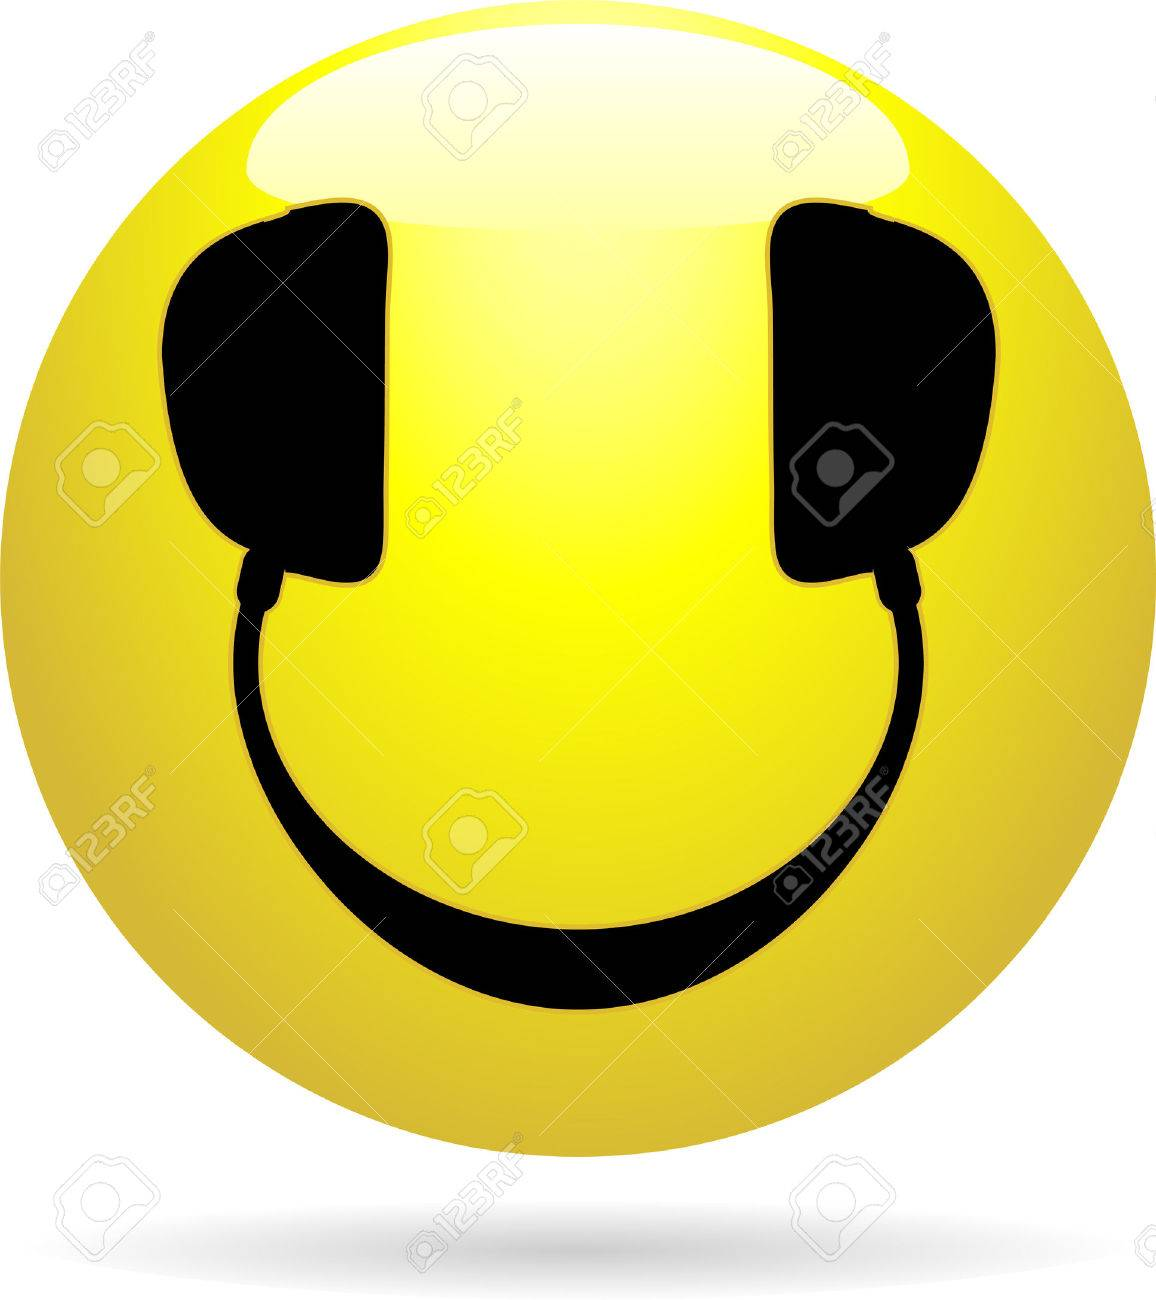 Glossy Smiley icon with headphones in place of eyes and mouth Stock Vector - 4894666